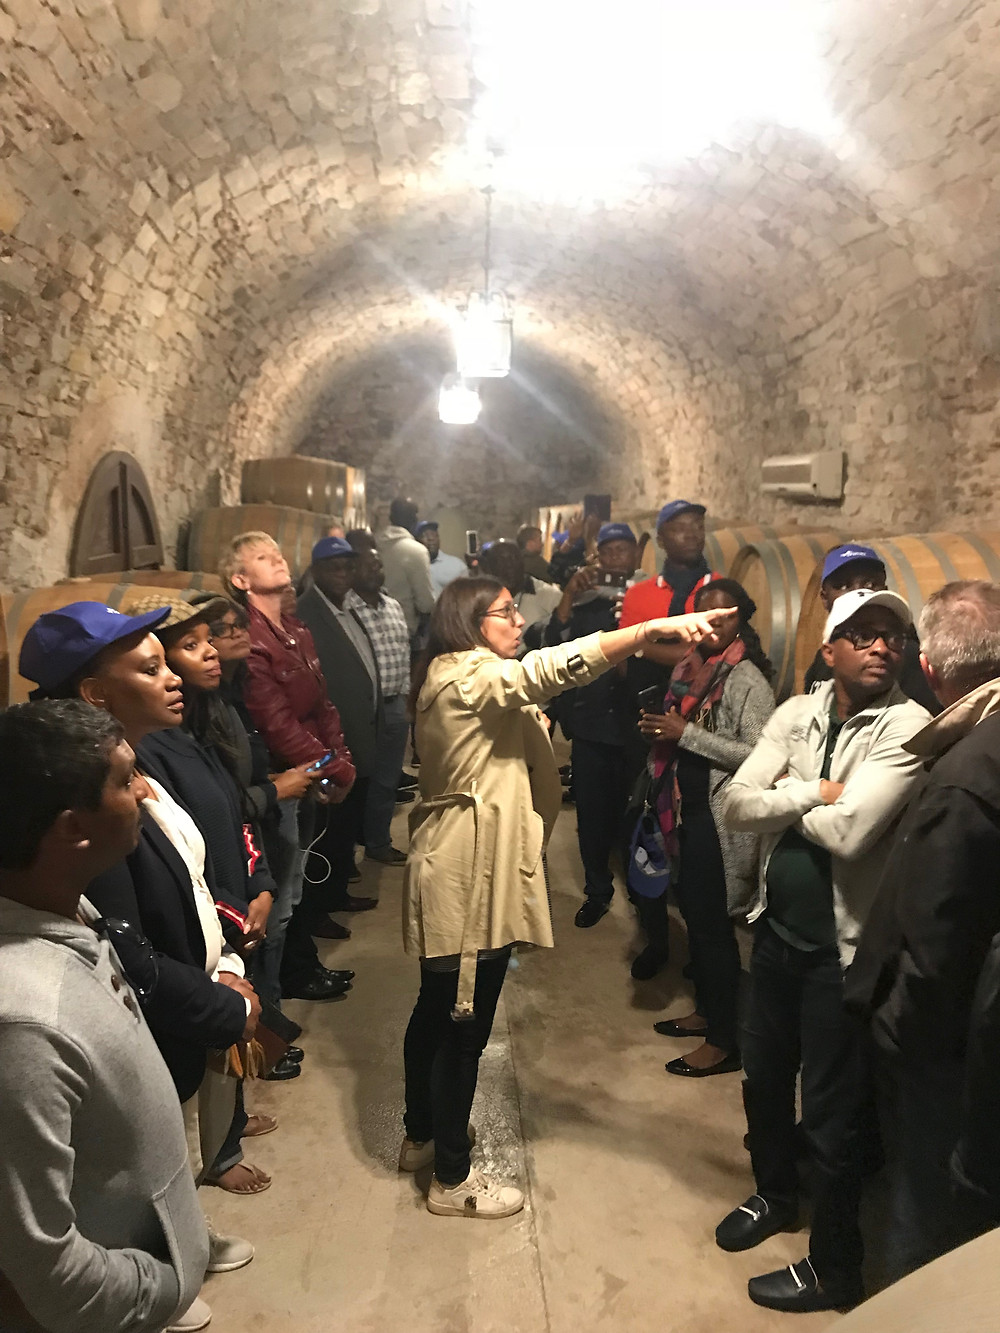 Showing to Sysmex the caves of the winery